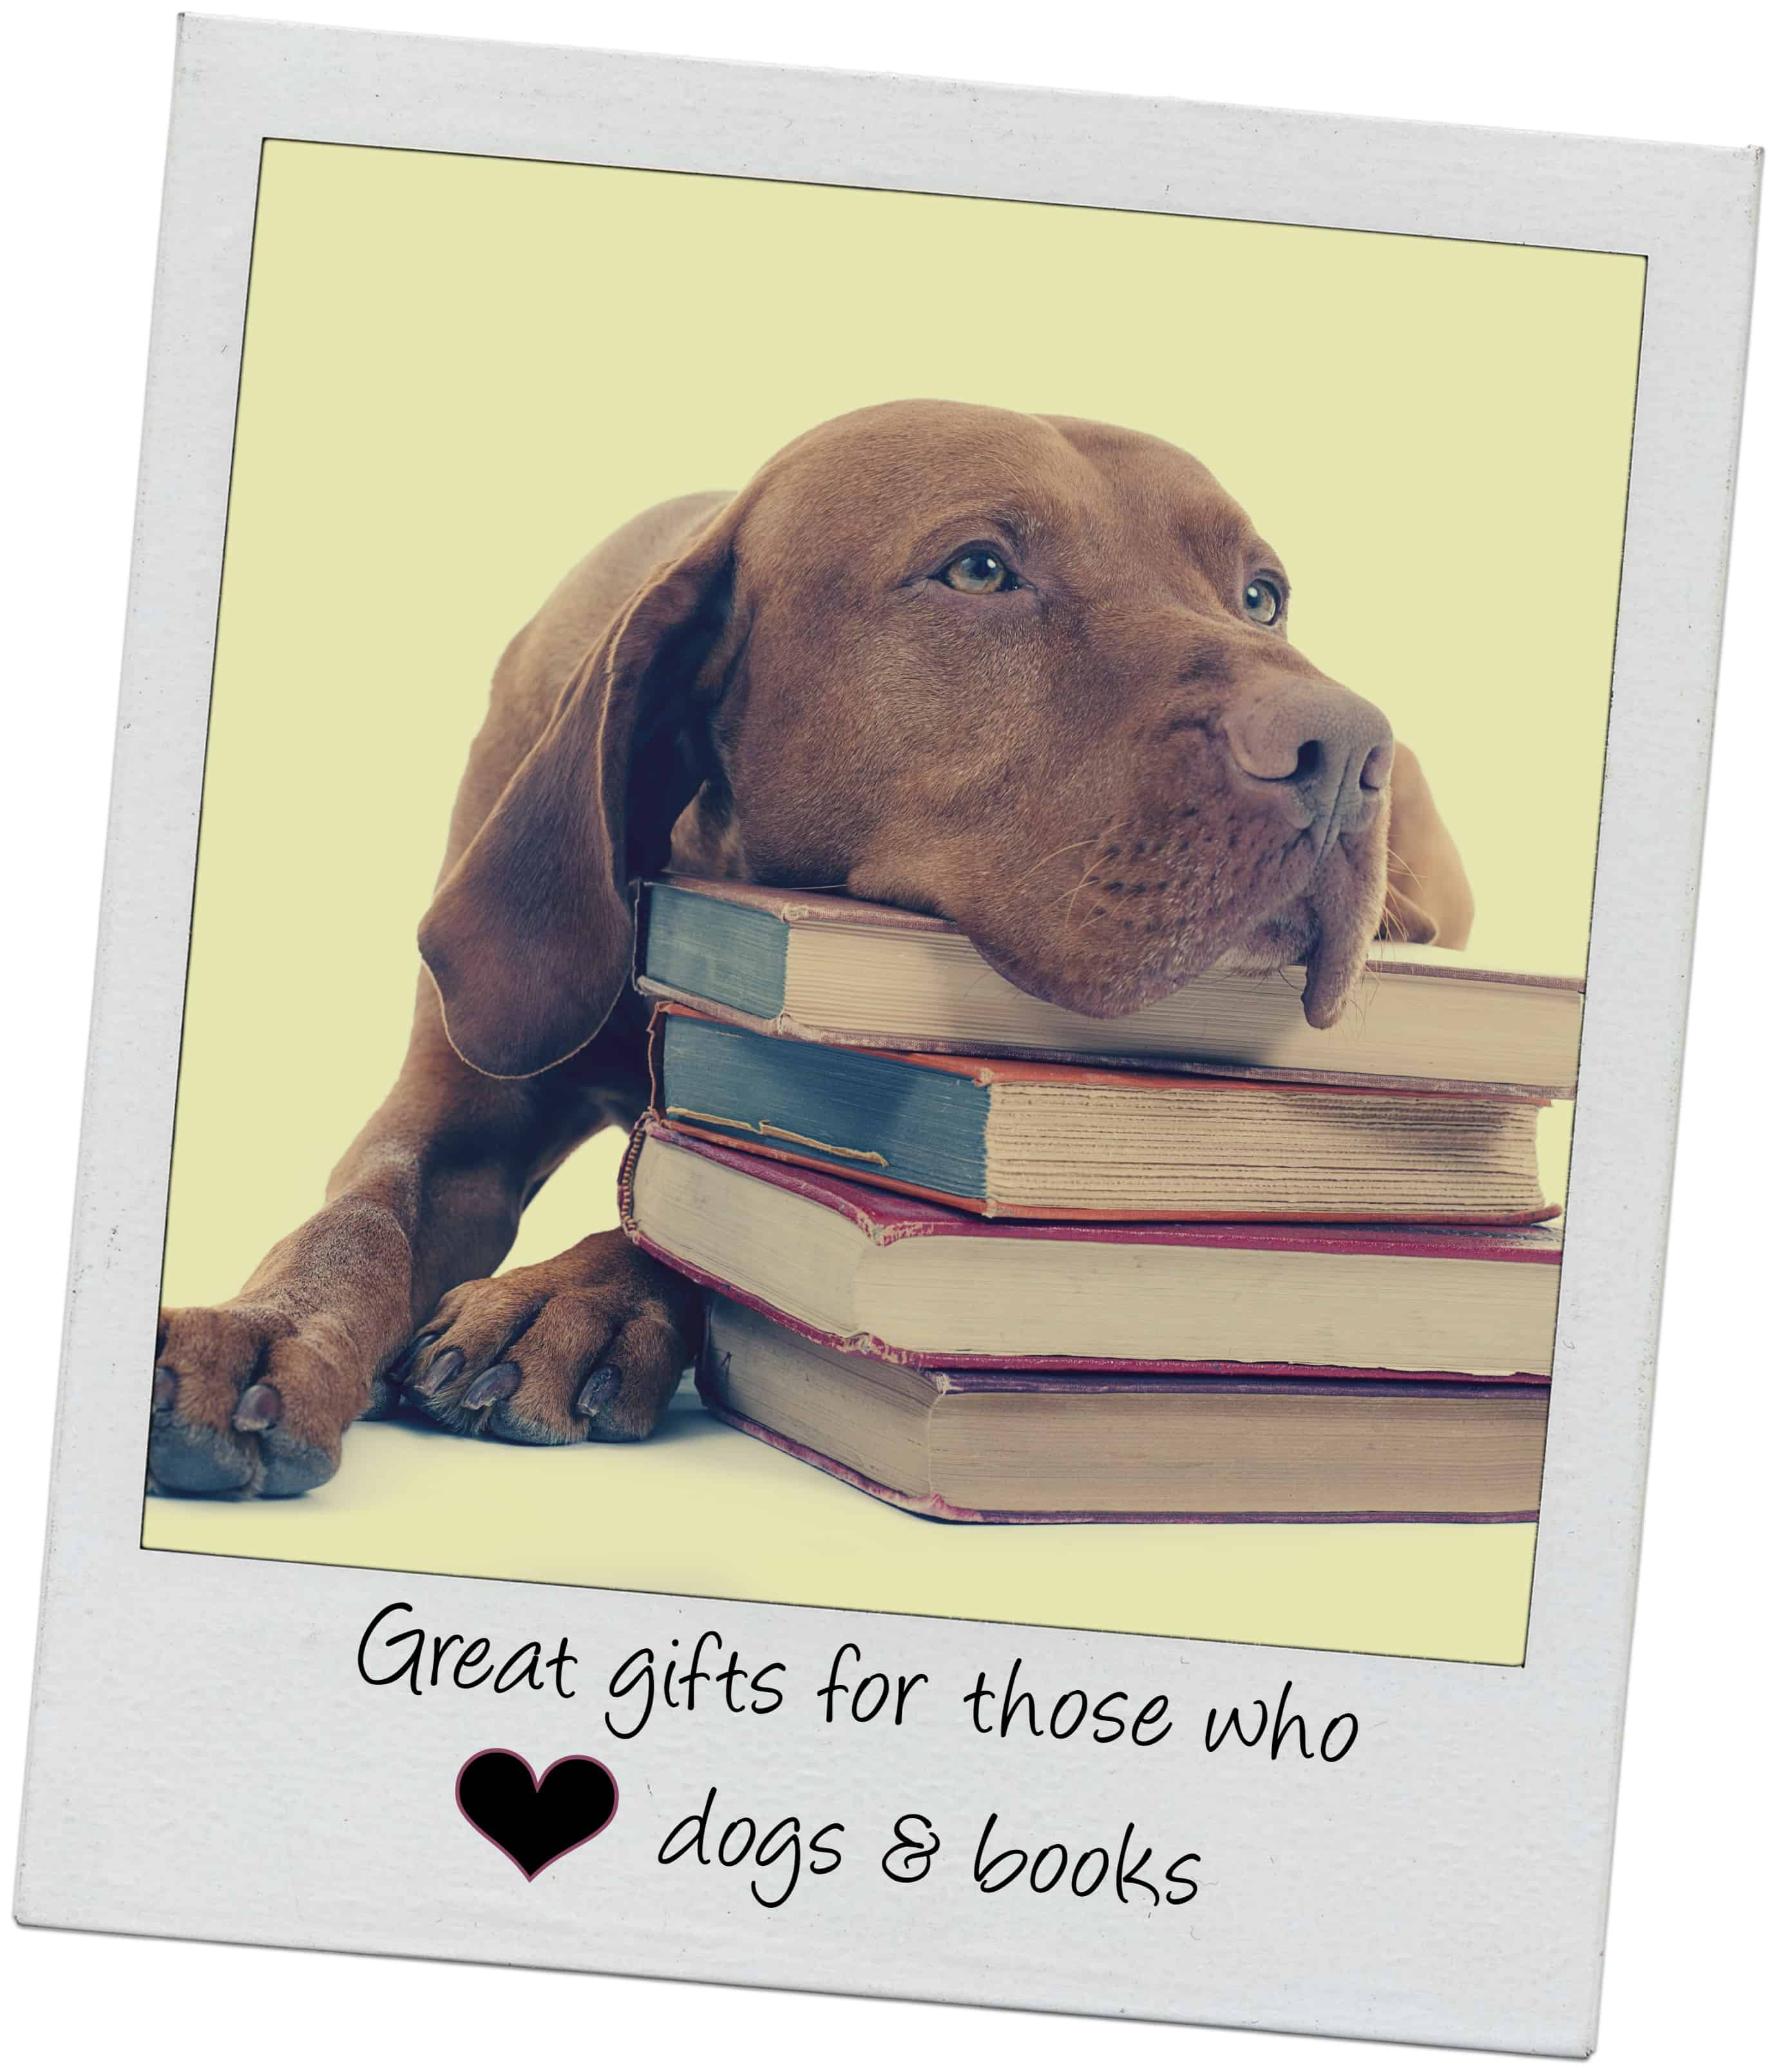 Reading has gone to the Dogs: Gifts for Doglovers who like Books - 5